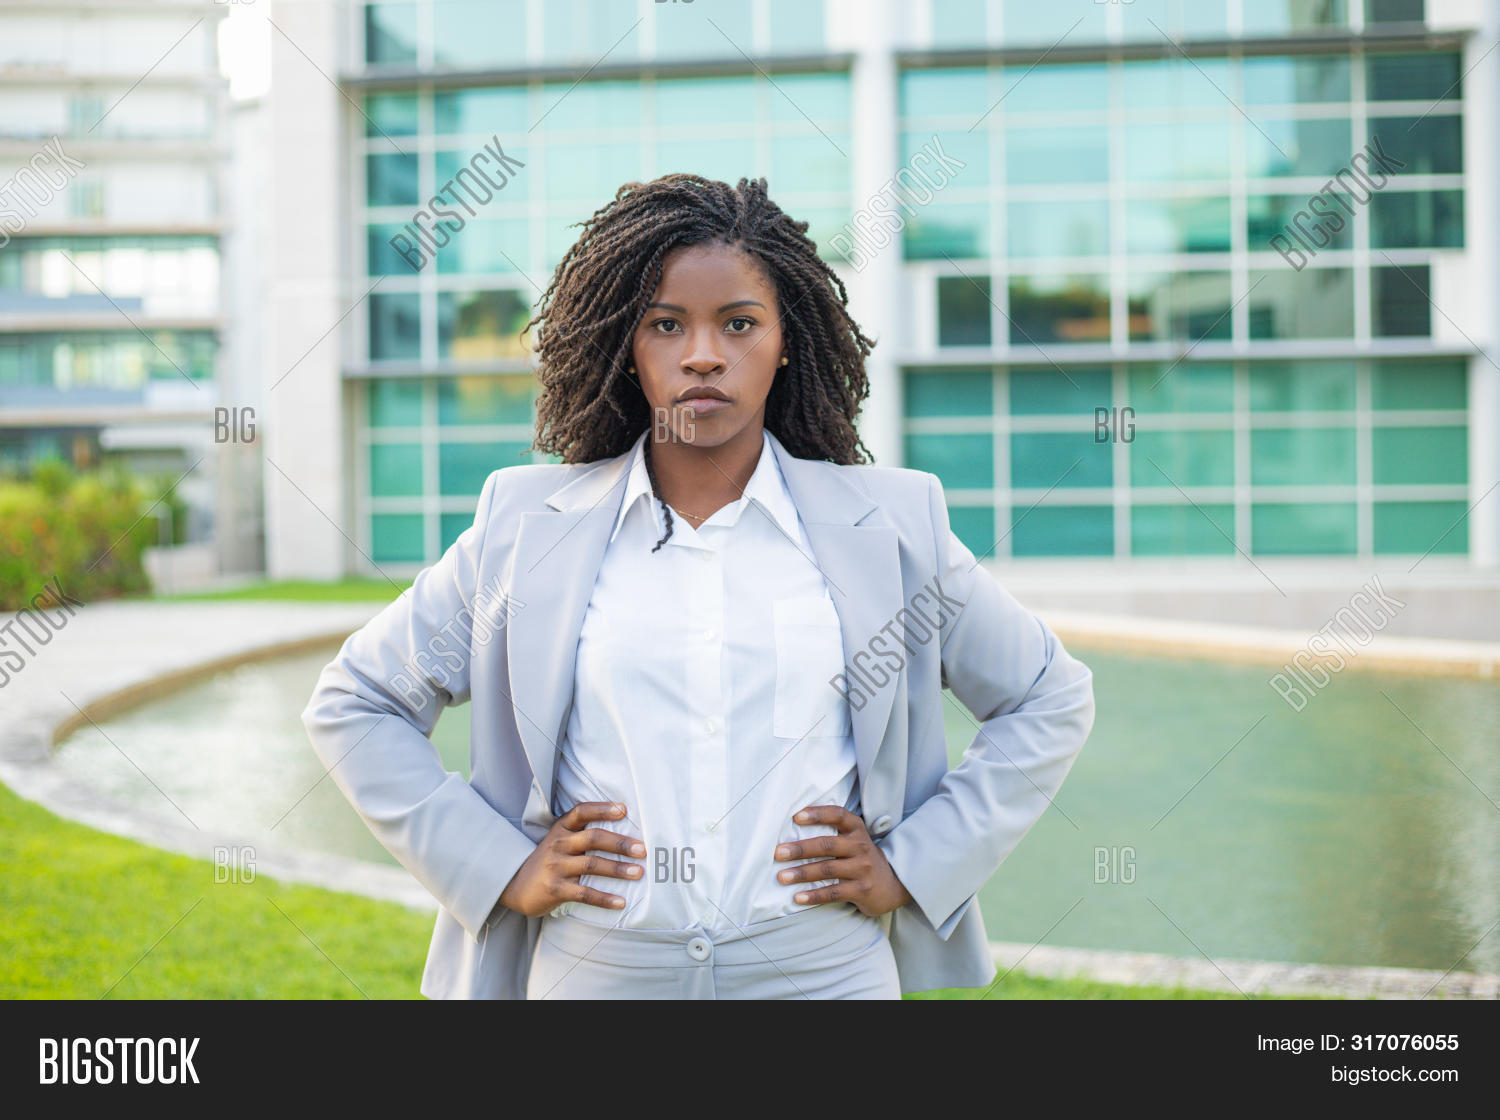 adult,akimbo,black,building,business,businesswoman,camera,career,ceo,city,company,concept,corporate,determined,dread,employee,entrepreneur,executive,female,hand,hip,job,leader,leadership,lifestyle,looking,manager,office,out,outdoors,outside,pensive,people,portrait,posing,professional,serious,standing,success,suit,thinking,urban,woman,work,young